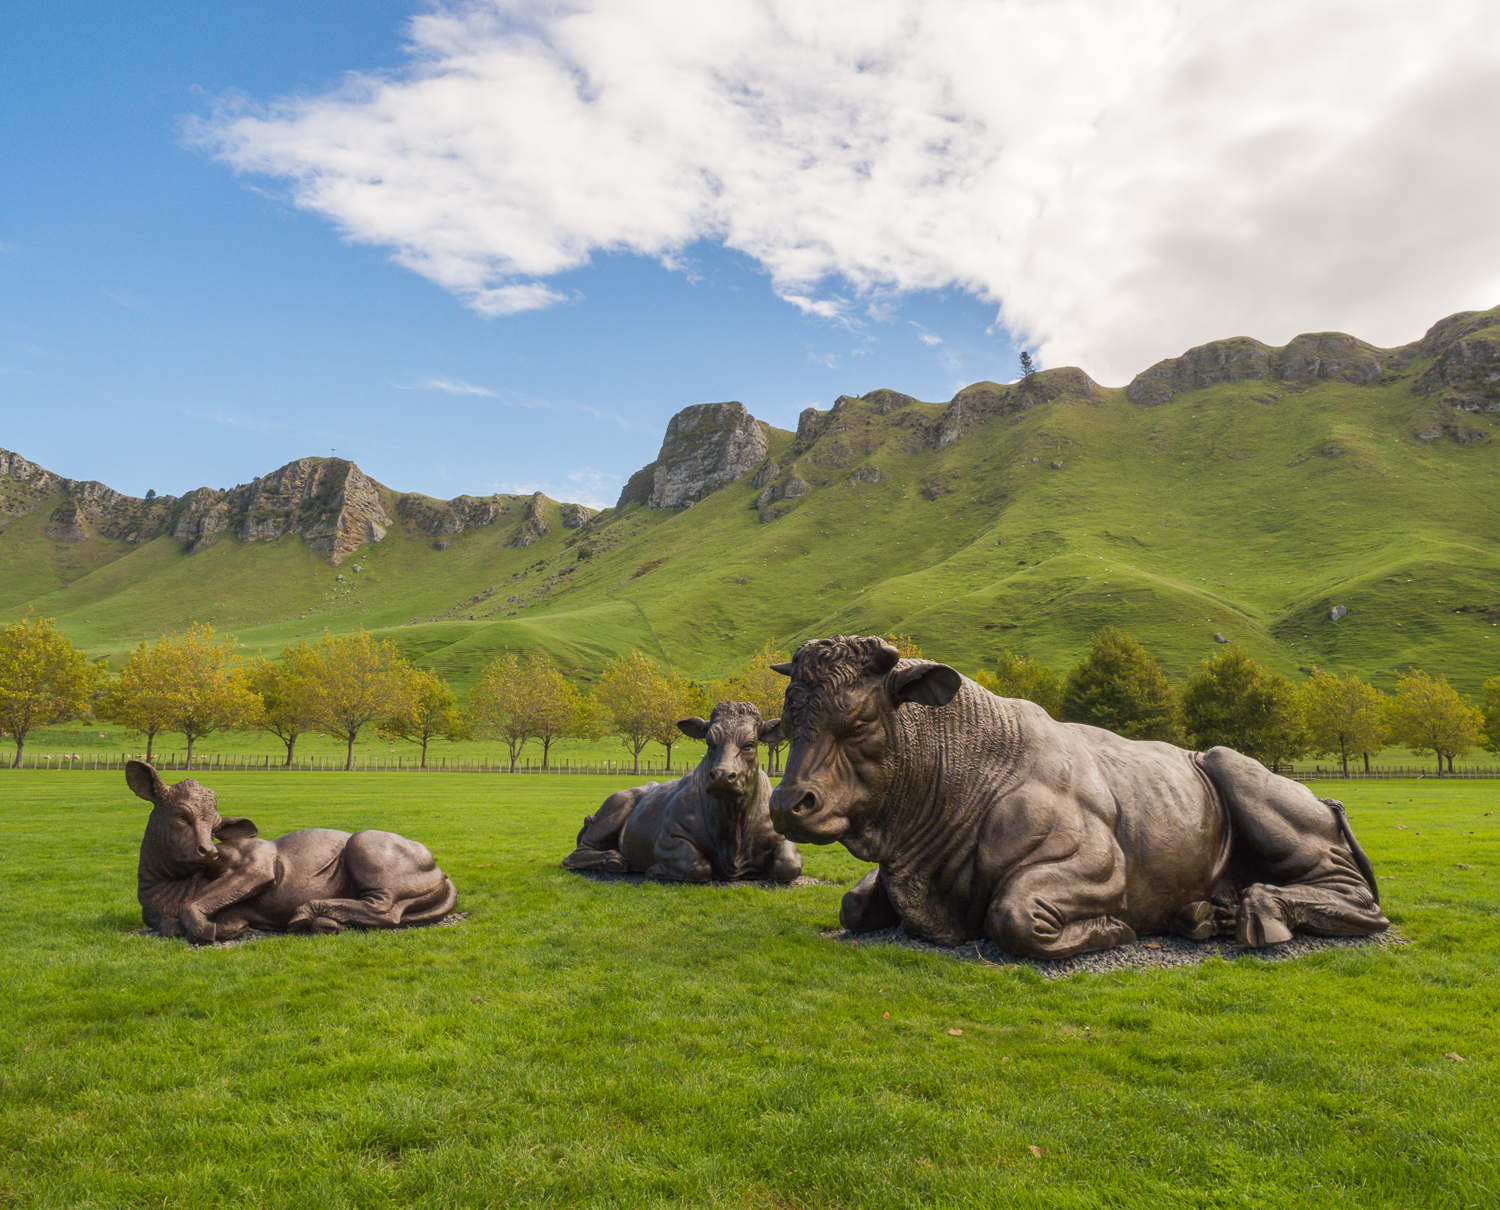 Craggy Range Vineyard & Winery, Havelock North. A family of charolais cattle sculptures by acclaimed British sculptor Paul Day.